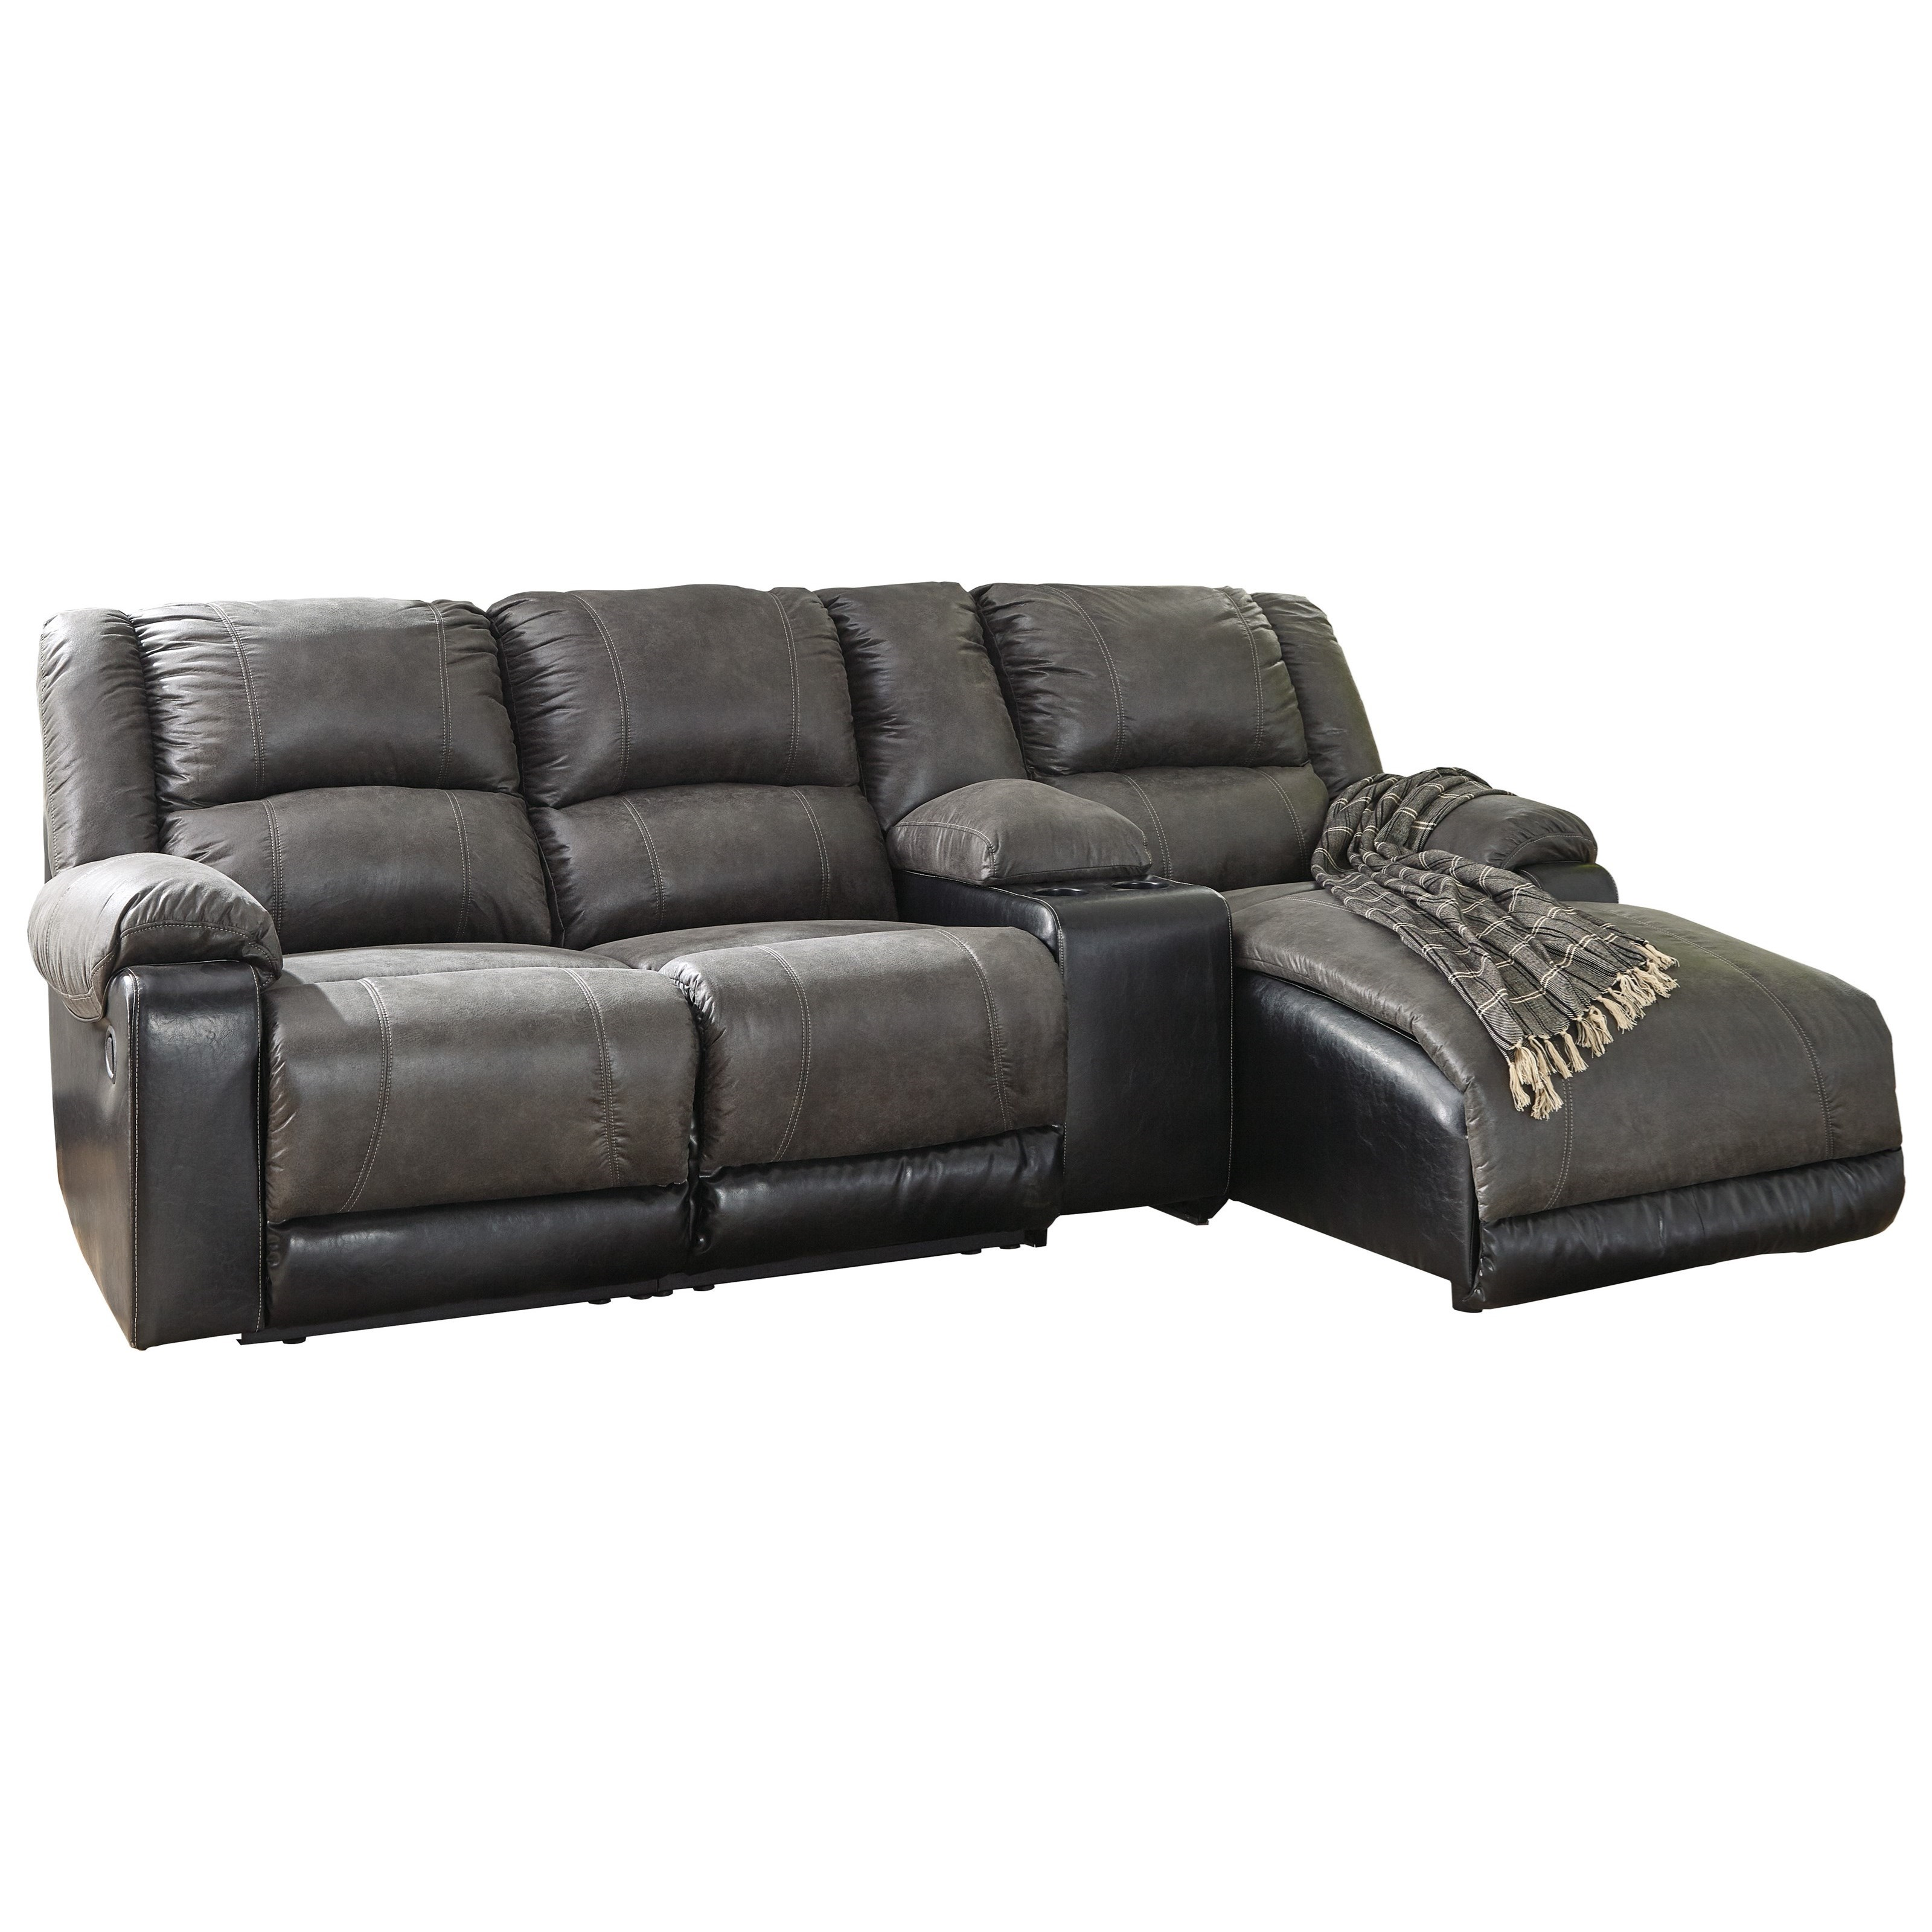 Nantahala Reclining Chaise Sofa With Storage Console By Signature Design Ashley At Household Furniture